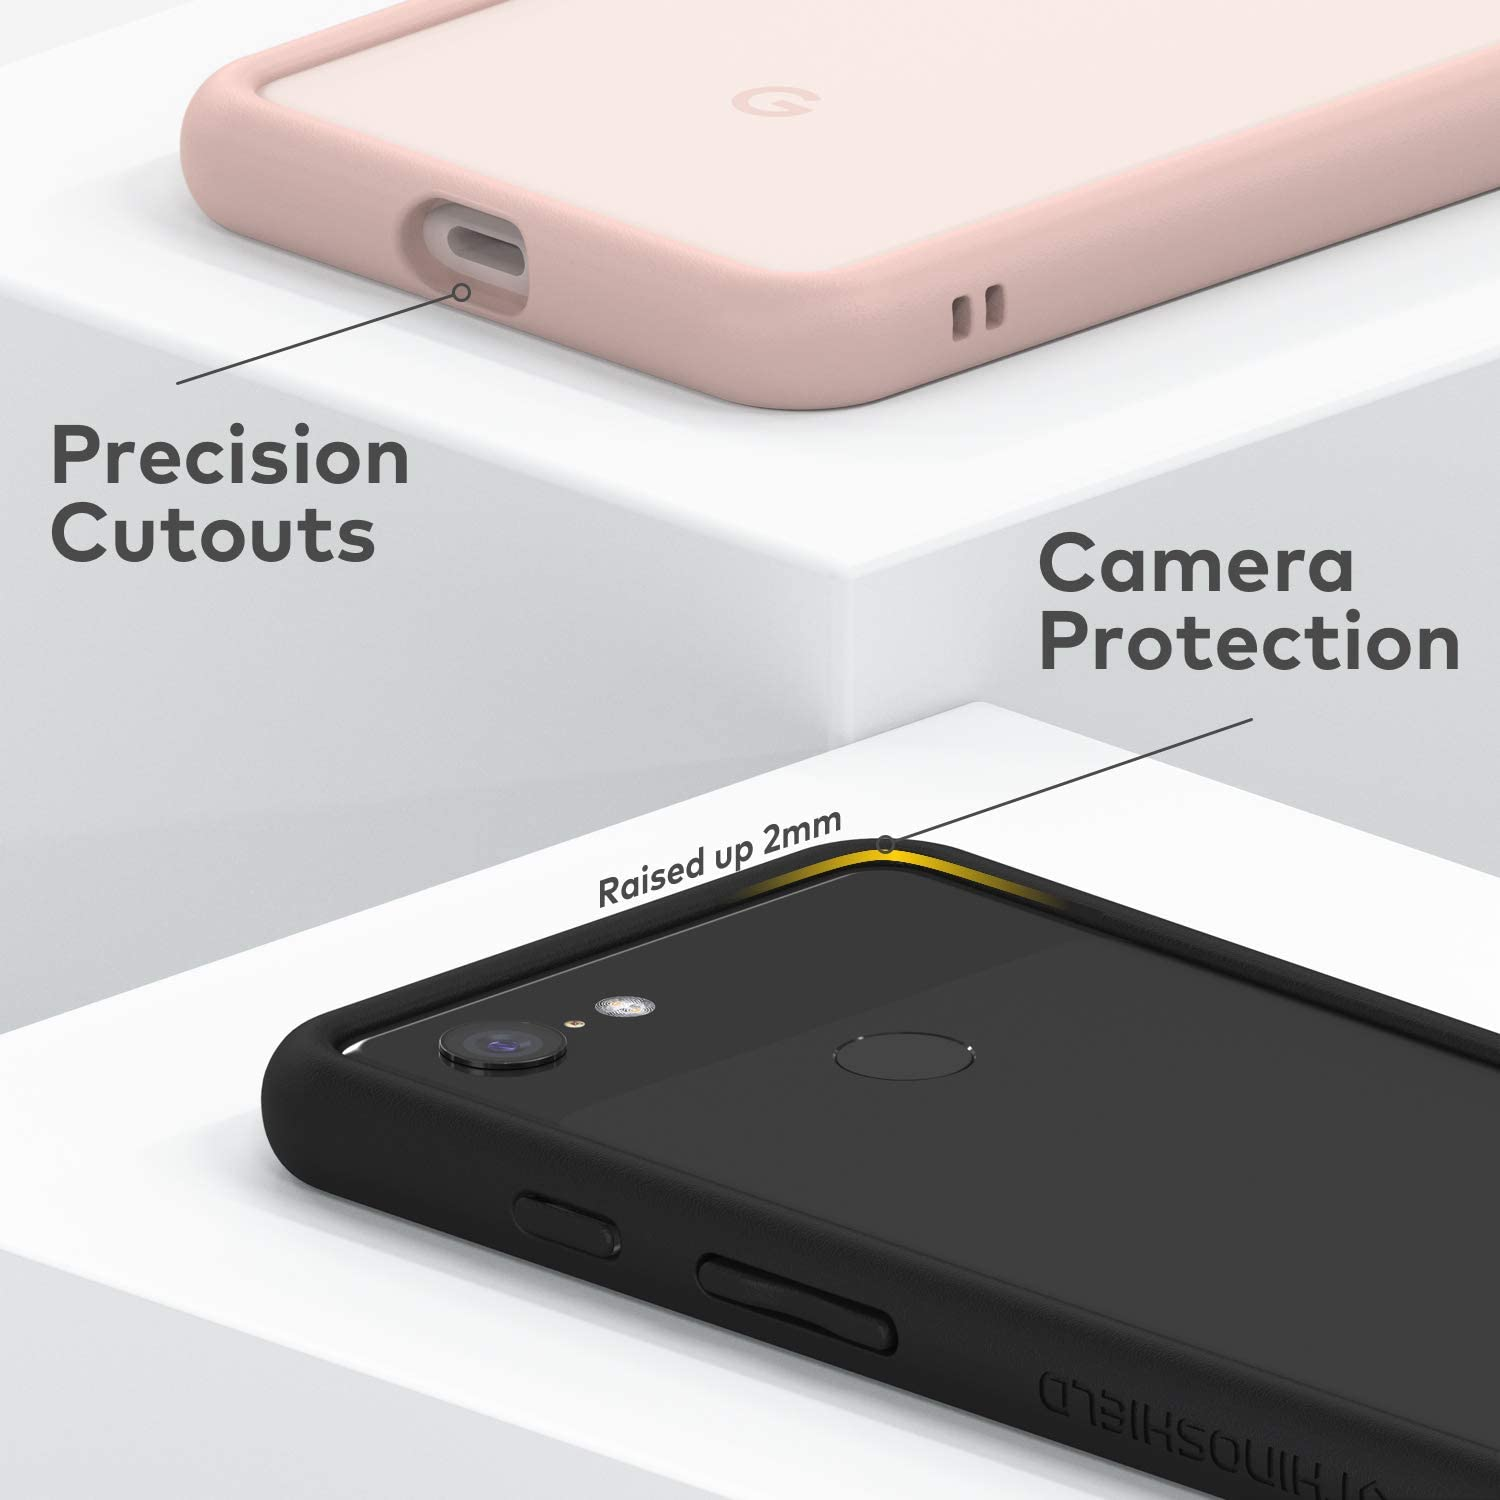 3.5M // 11ft Drop Protection - White Shock Absorbent Slim Design Protective Cover RhinoShield Bumper Case Compatible with Google | CrashGuard Pixel 3 XL